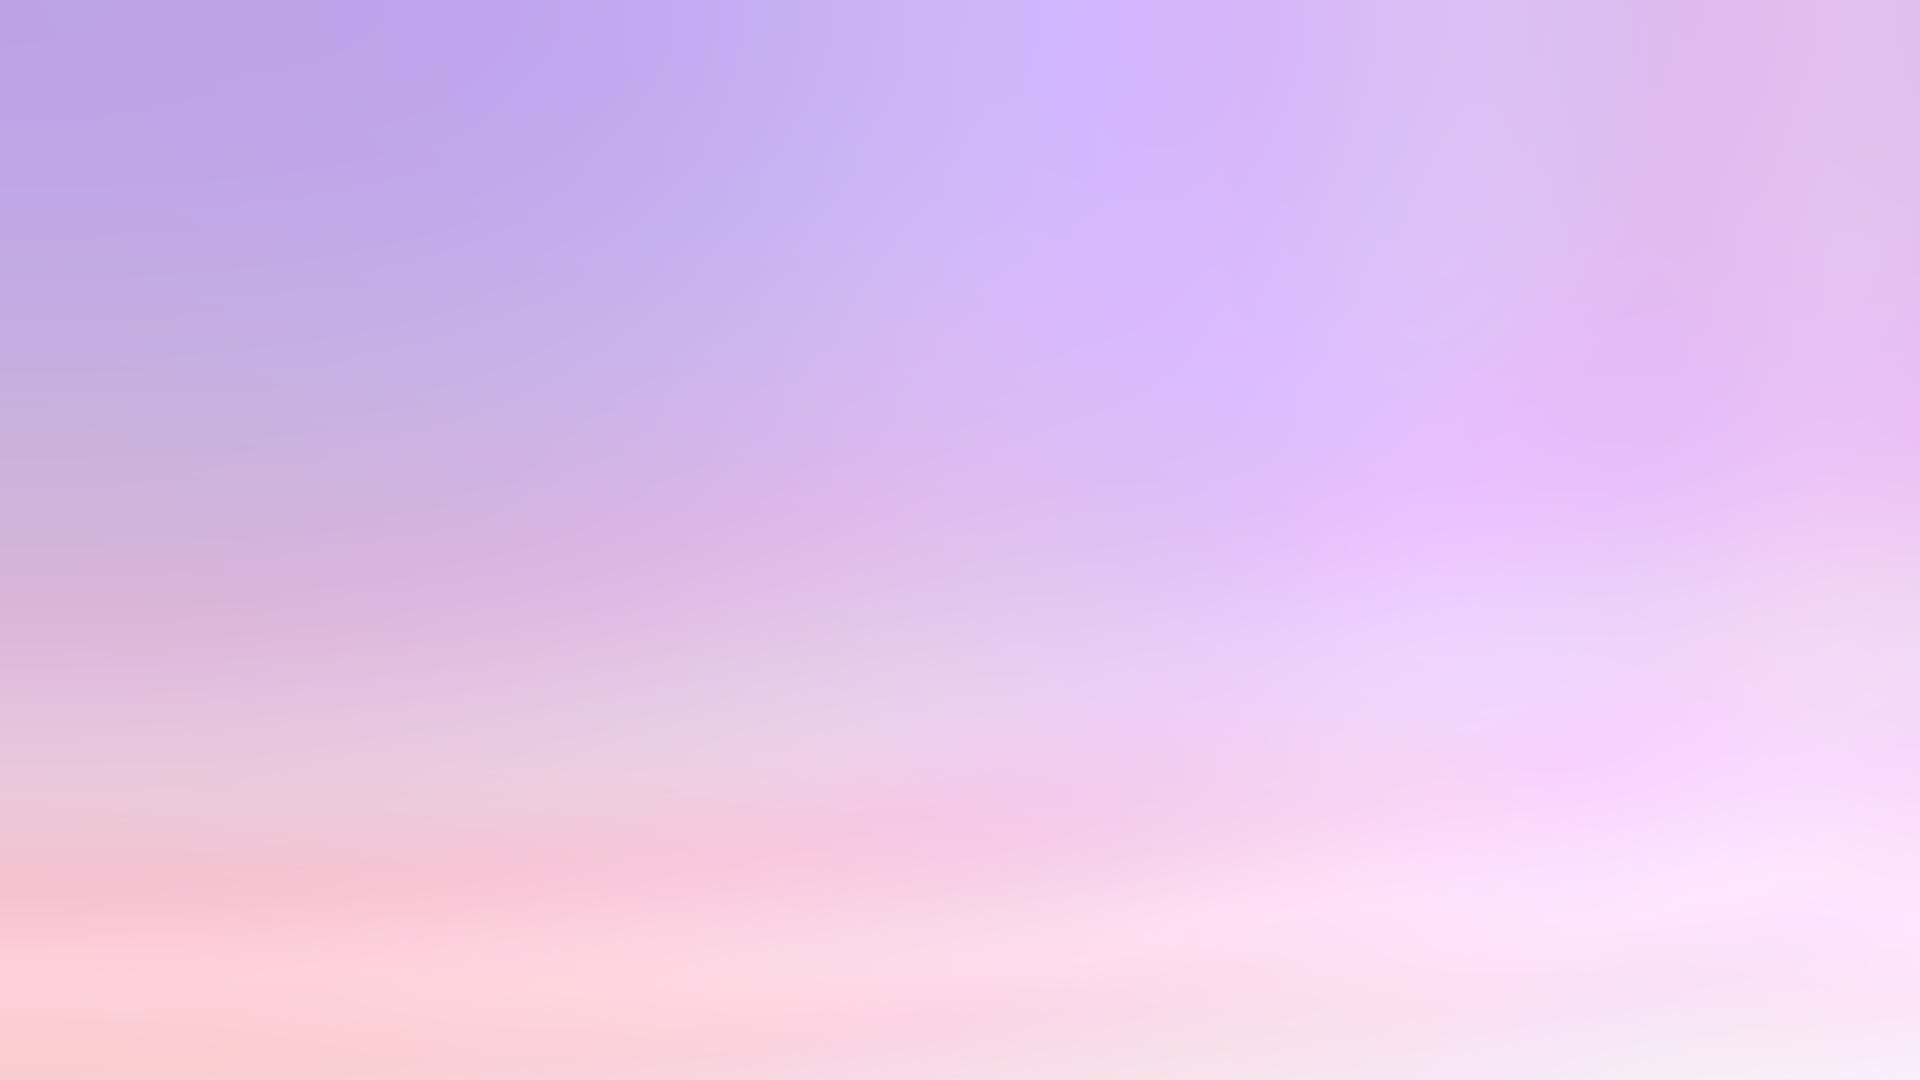 Pastel Pink Wallpapers Top Free Pastel Pink Backgrounds Wallpaperaccess